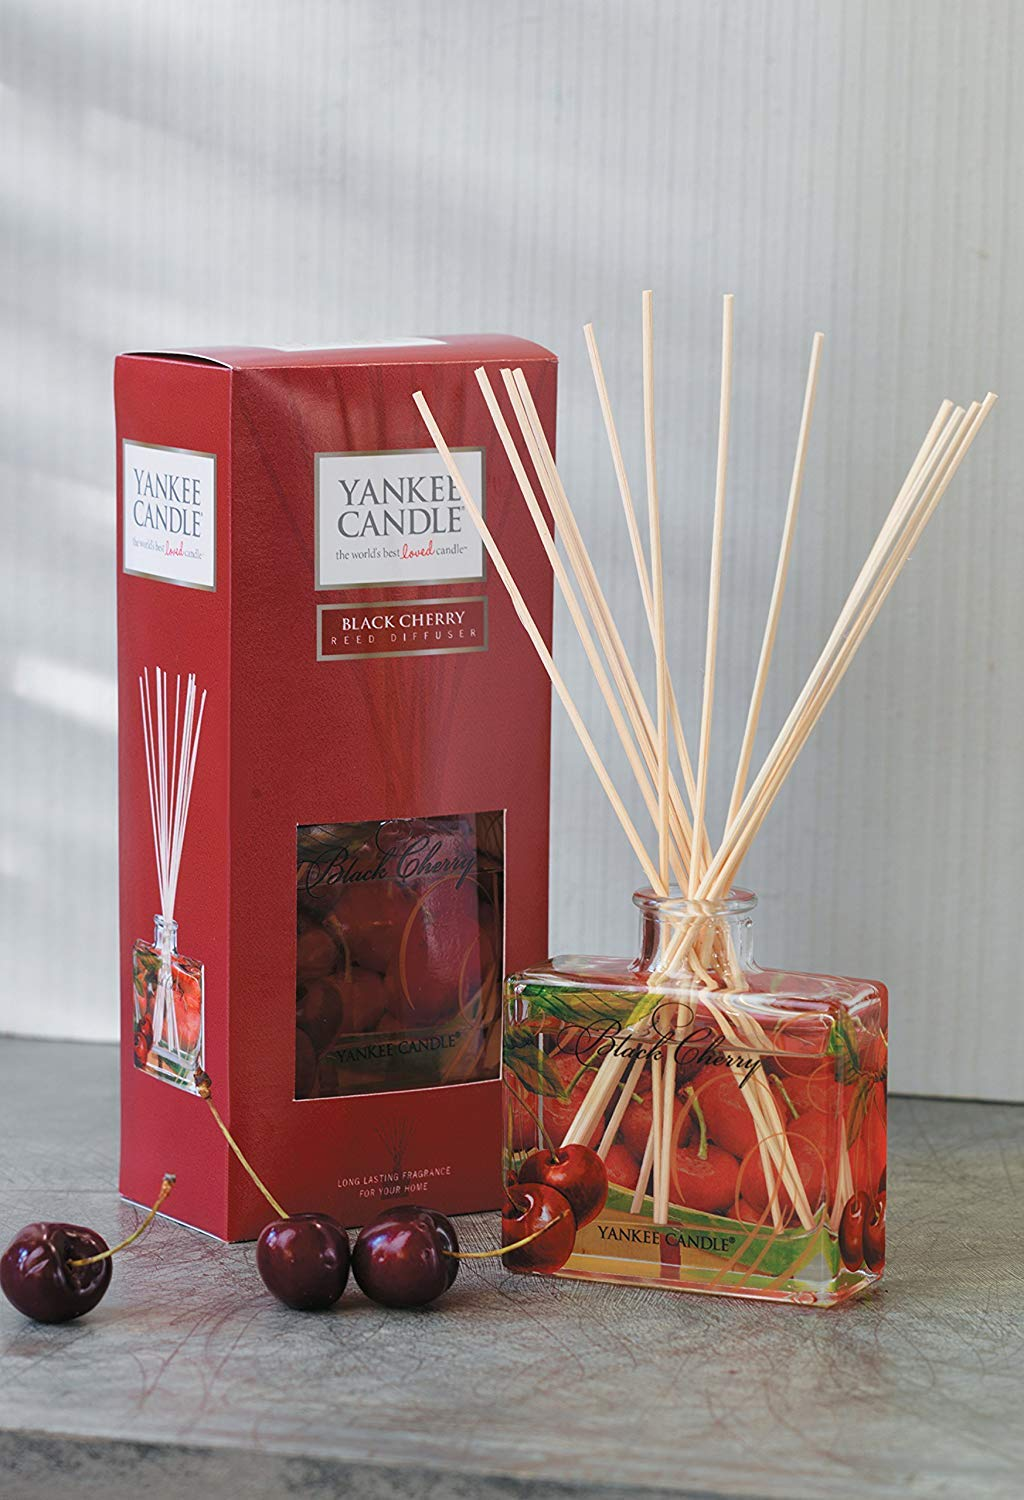 Yankee Candle Signature Reed Diffuser, Black Cherry,88 ml